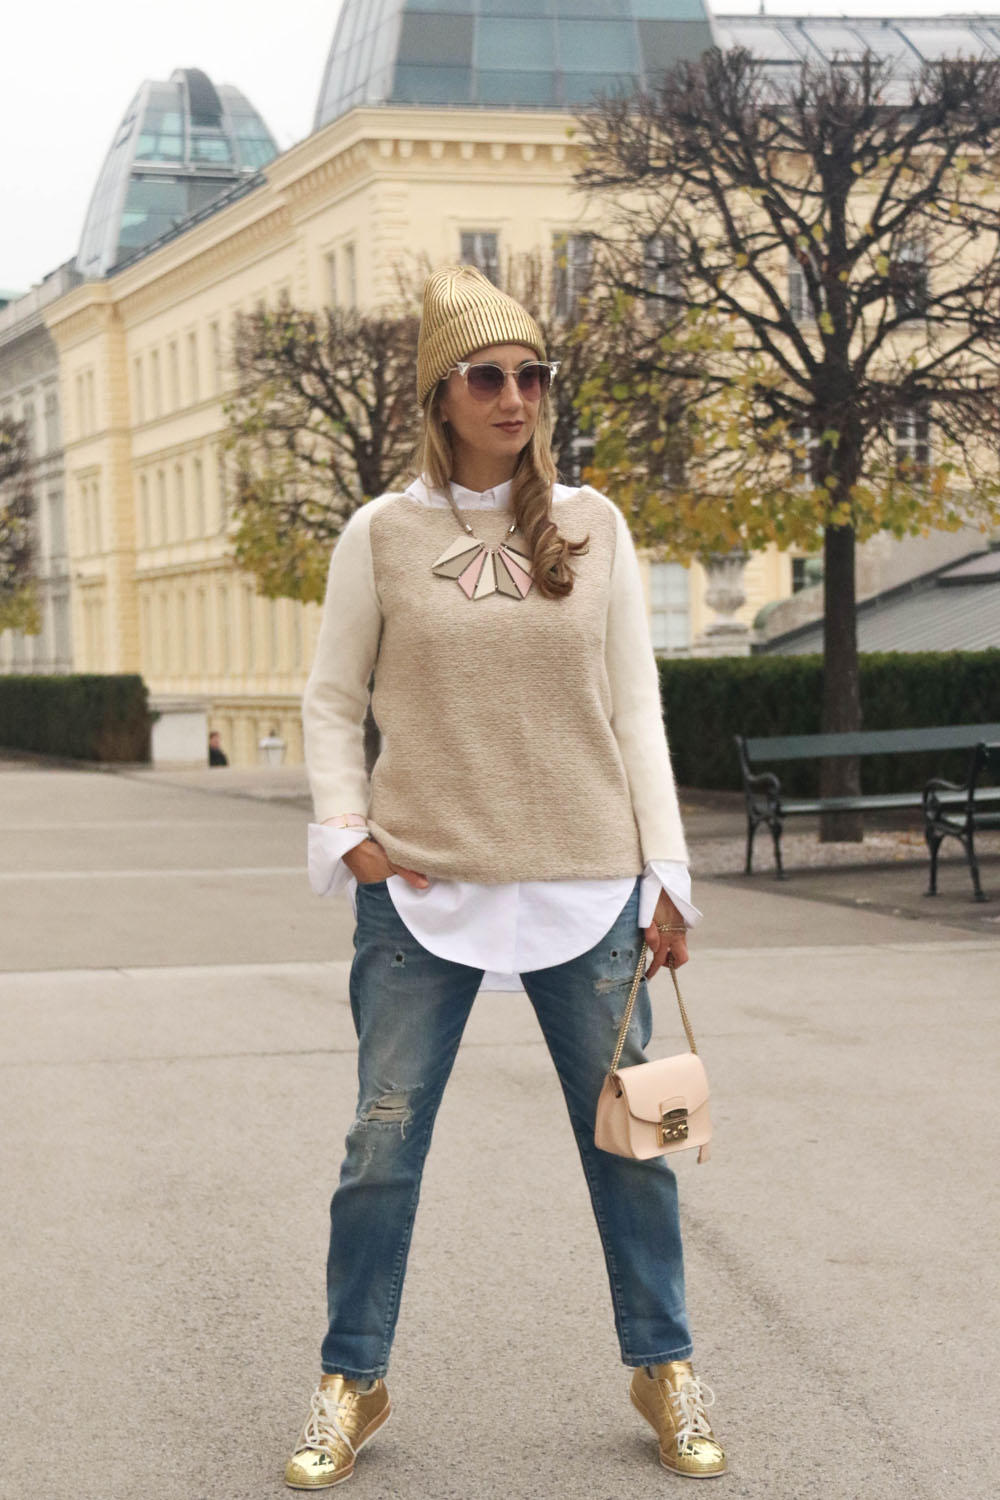 colourclub-outfit-adidas-superstars-sneakers-furla-bag-gold-beanie-vienna-jeans-fendi-sunglasses-albertina-vienna-armani-necklace-zara-knitwear